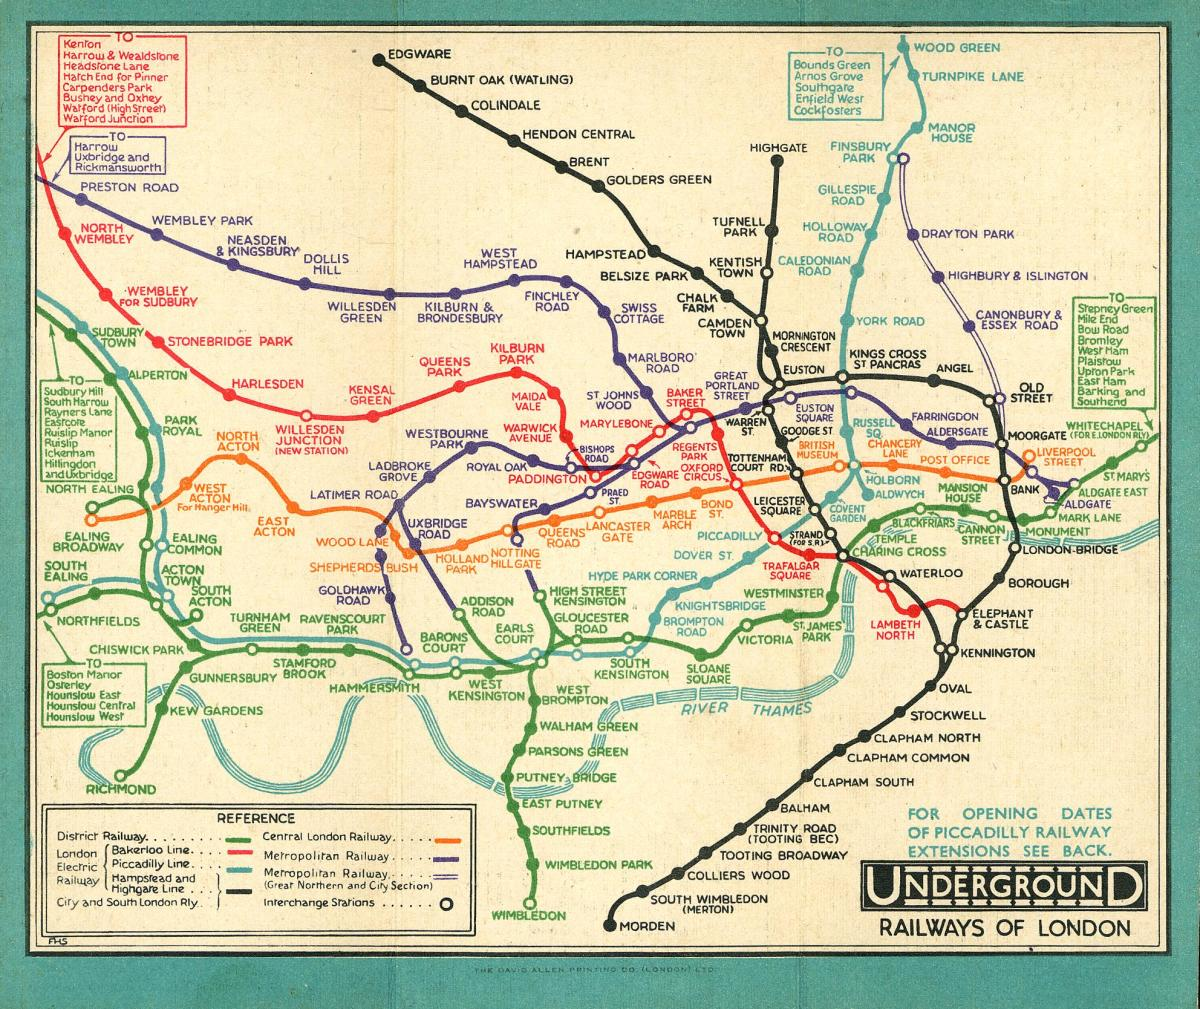 This geographical version of the Tube map dates from 1907. We can see even at this early time the Tube network was extensive.